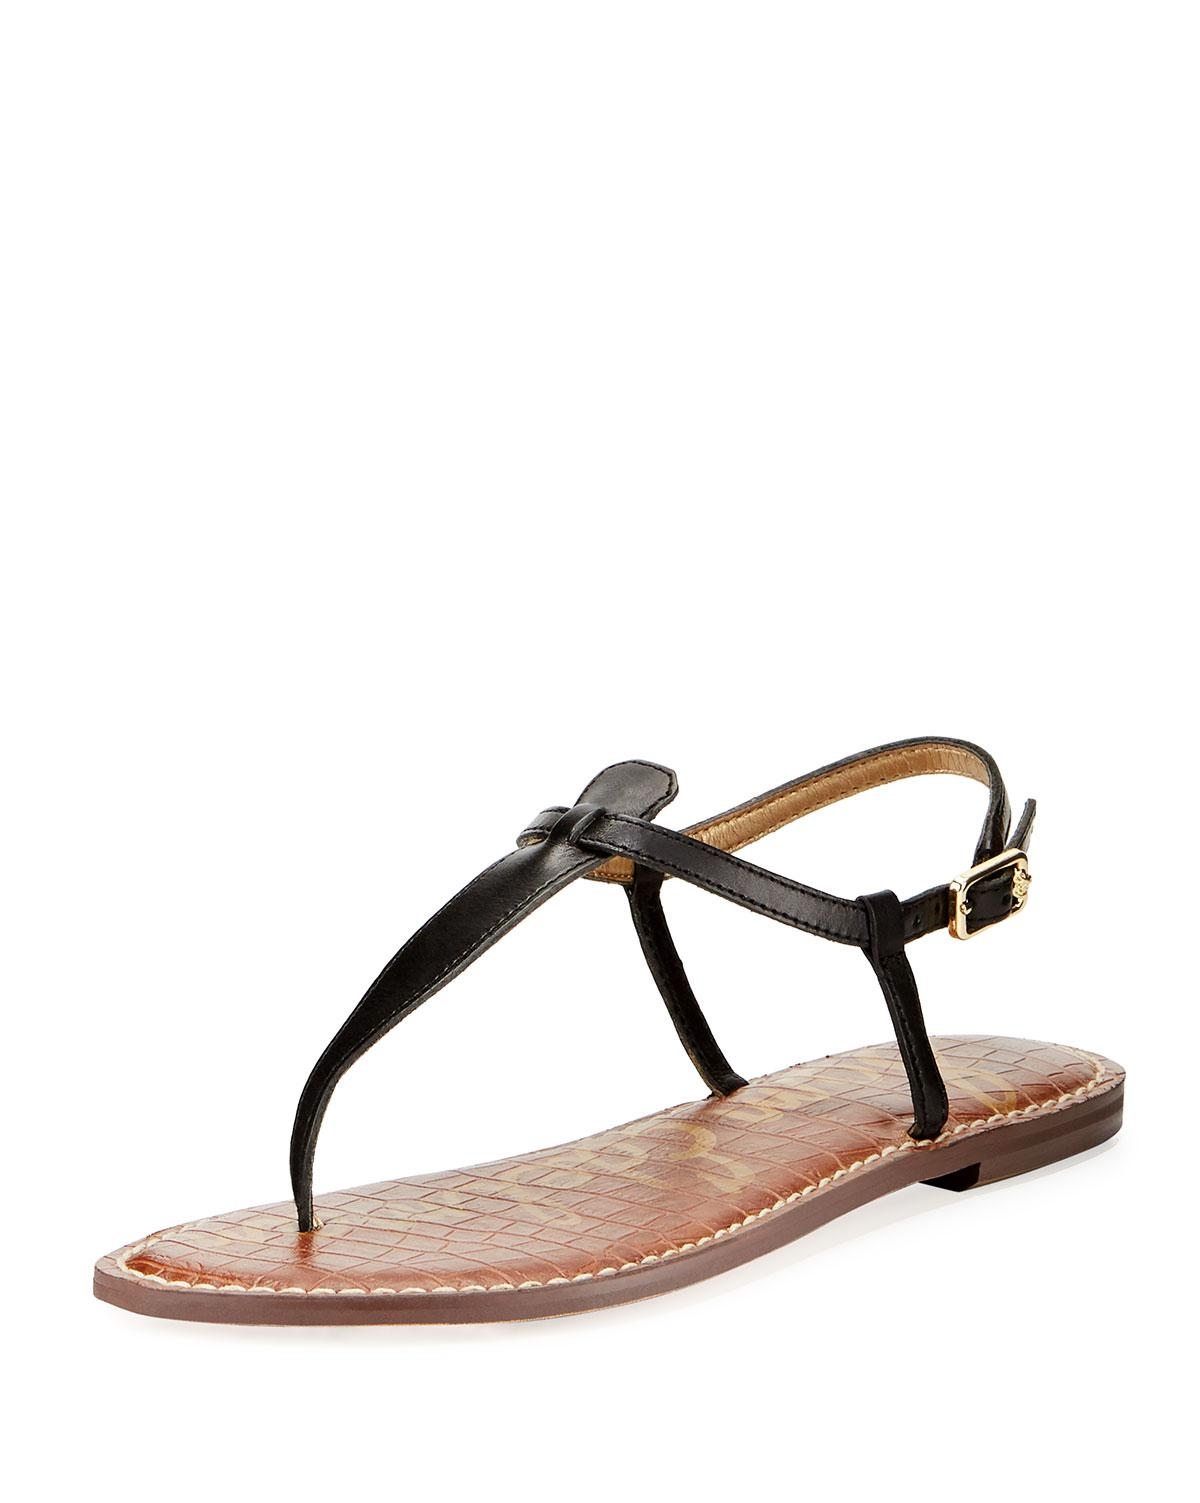 4f9595e8b5ad50 Lyst - Sam Edelman Gigi Leather Flat Thong Sandal in Black